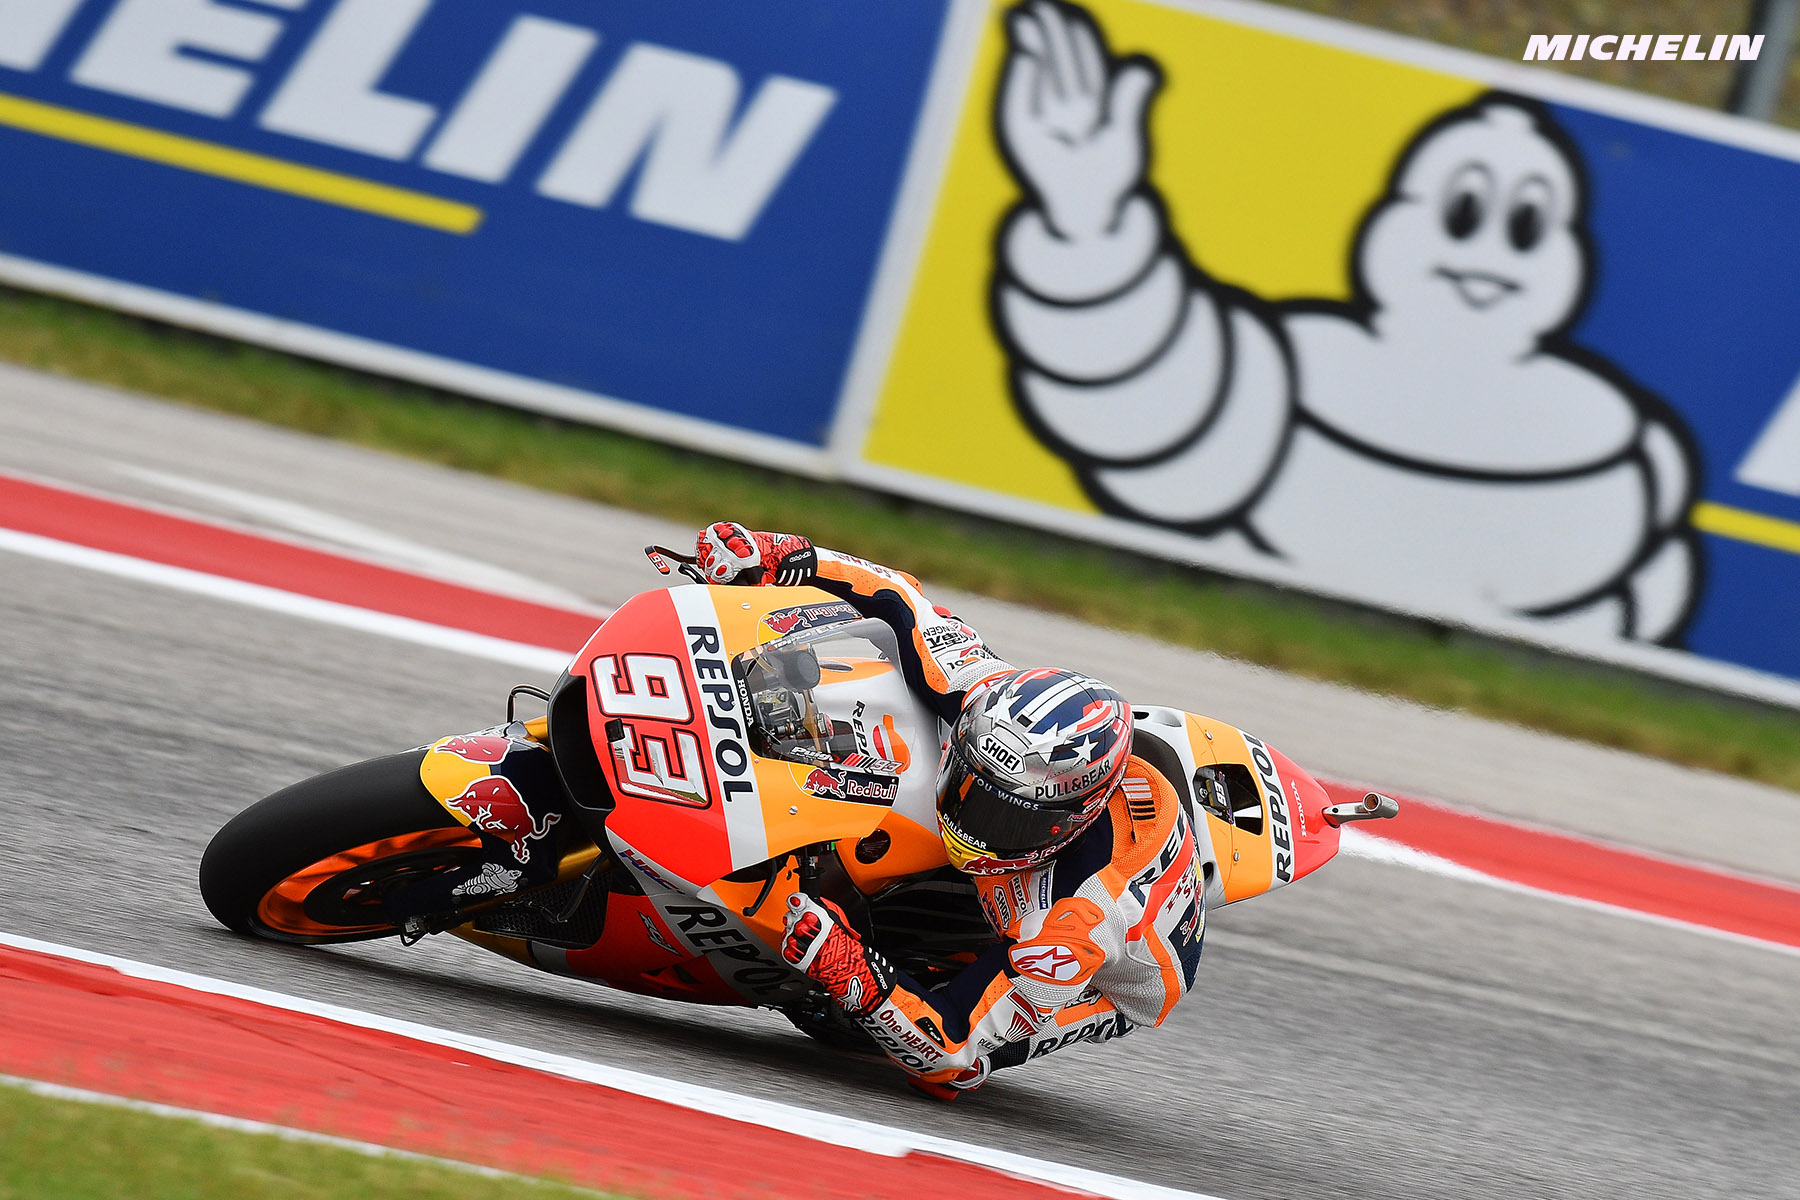 MotoGP: more Austin glory for Marquez